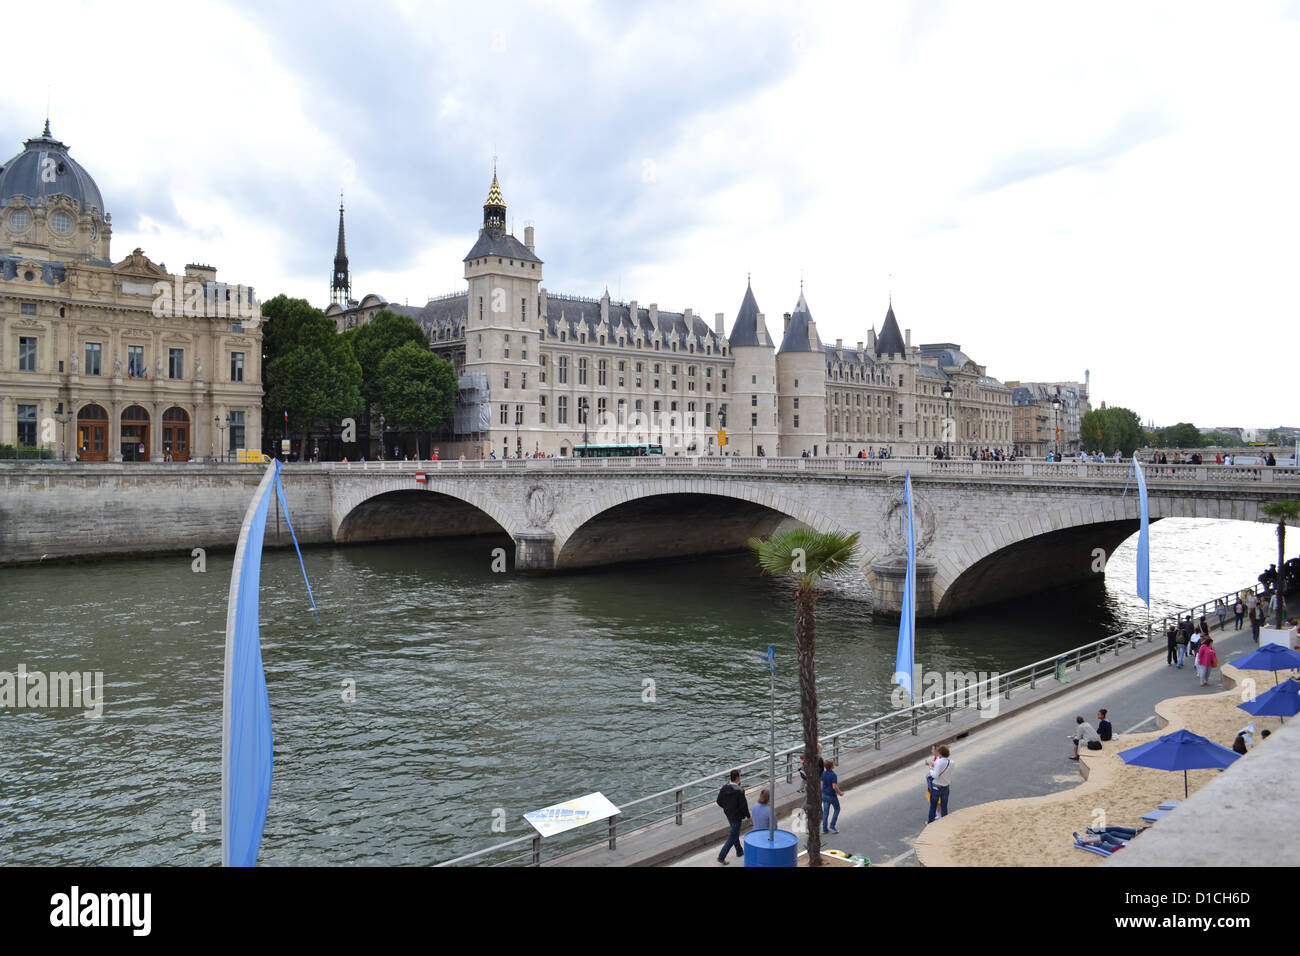 La Conciergerie palace and prison in Paris viewed from across the Seine. - Stock Image